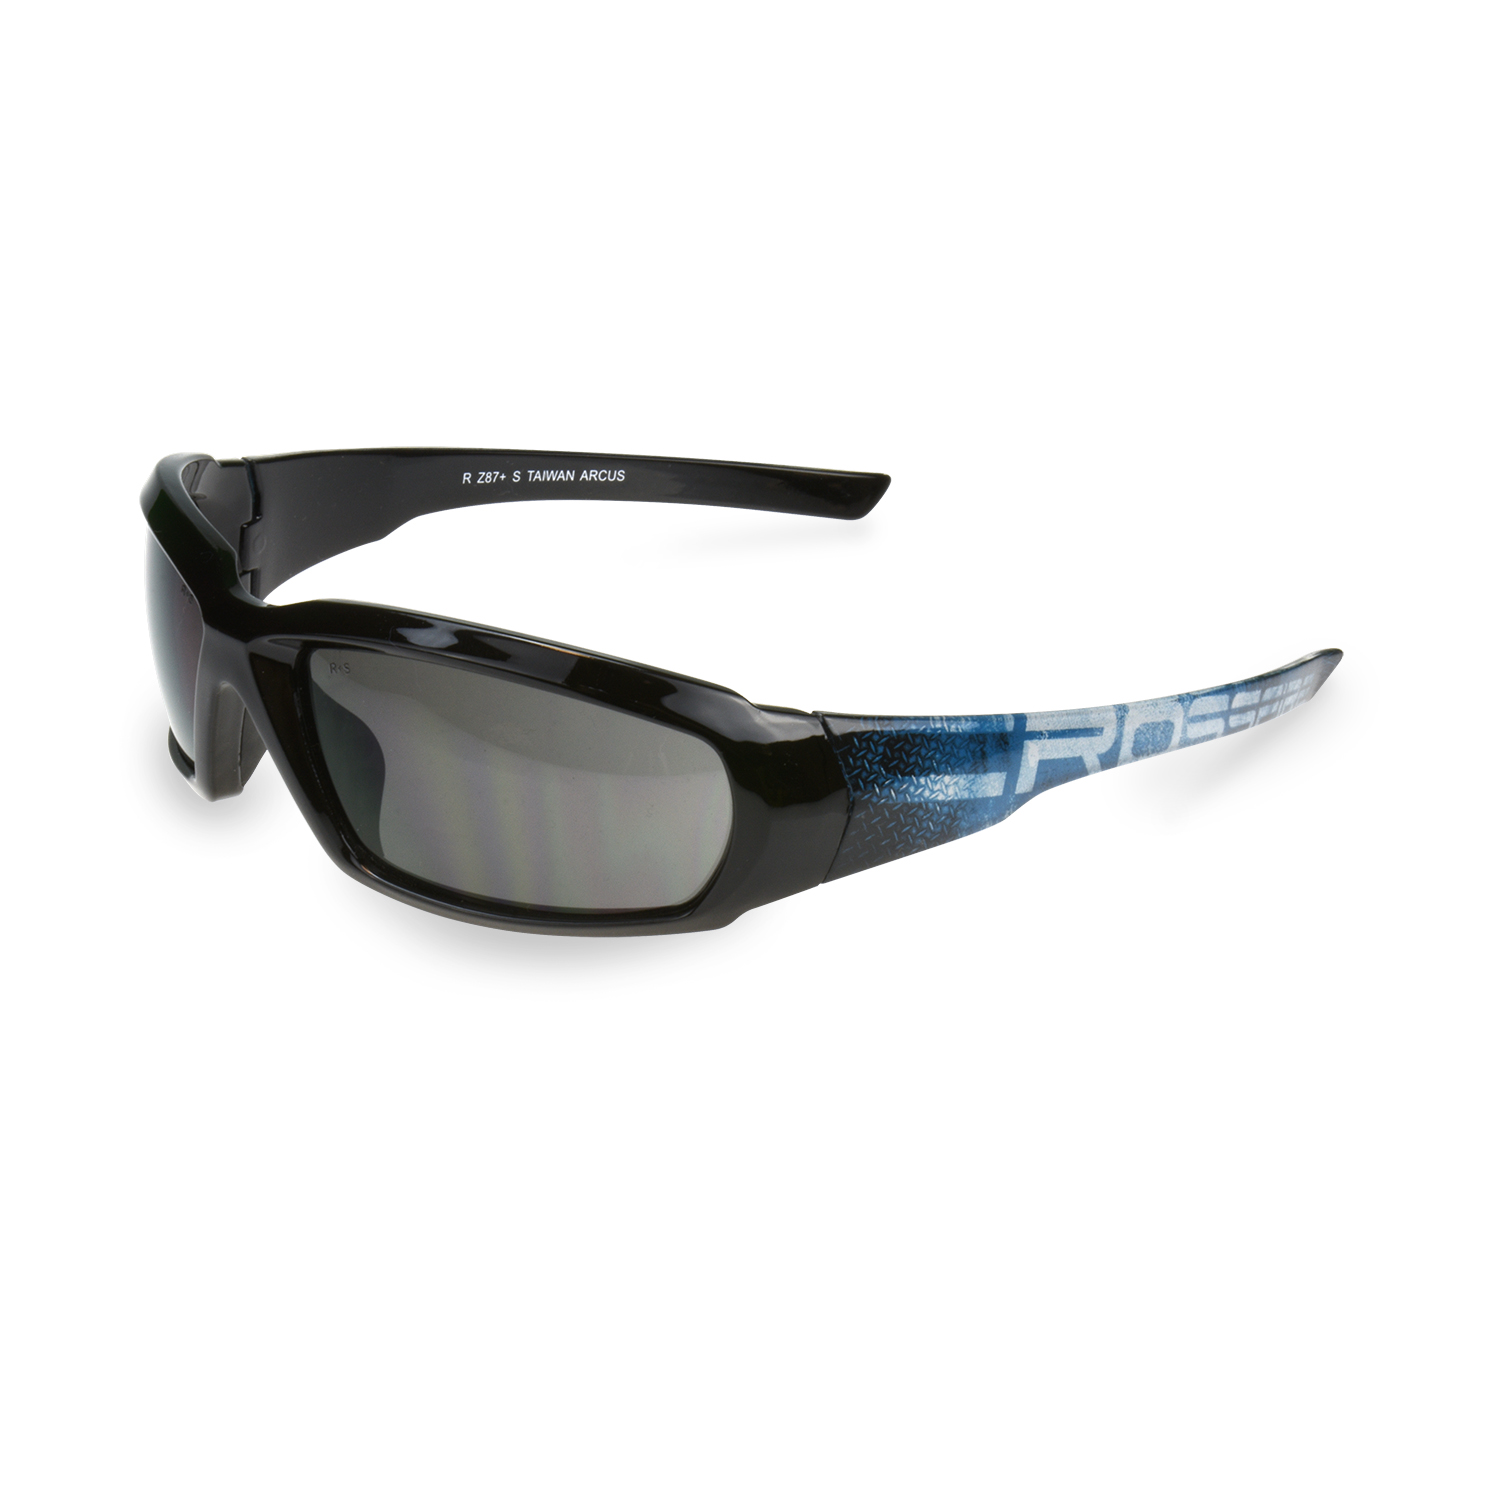 Crossfire ARCUS Premium Safety Eyewear